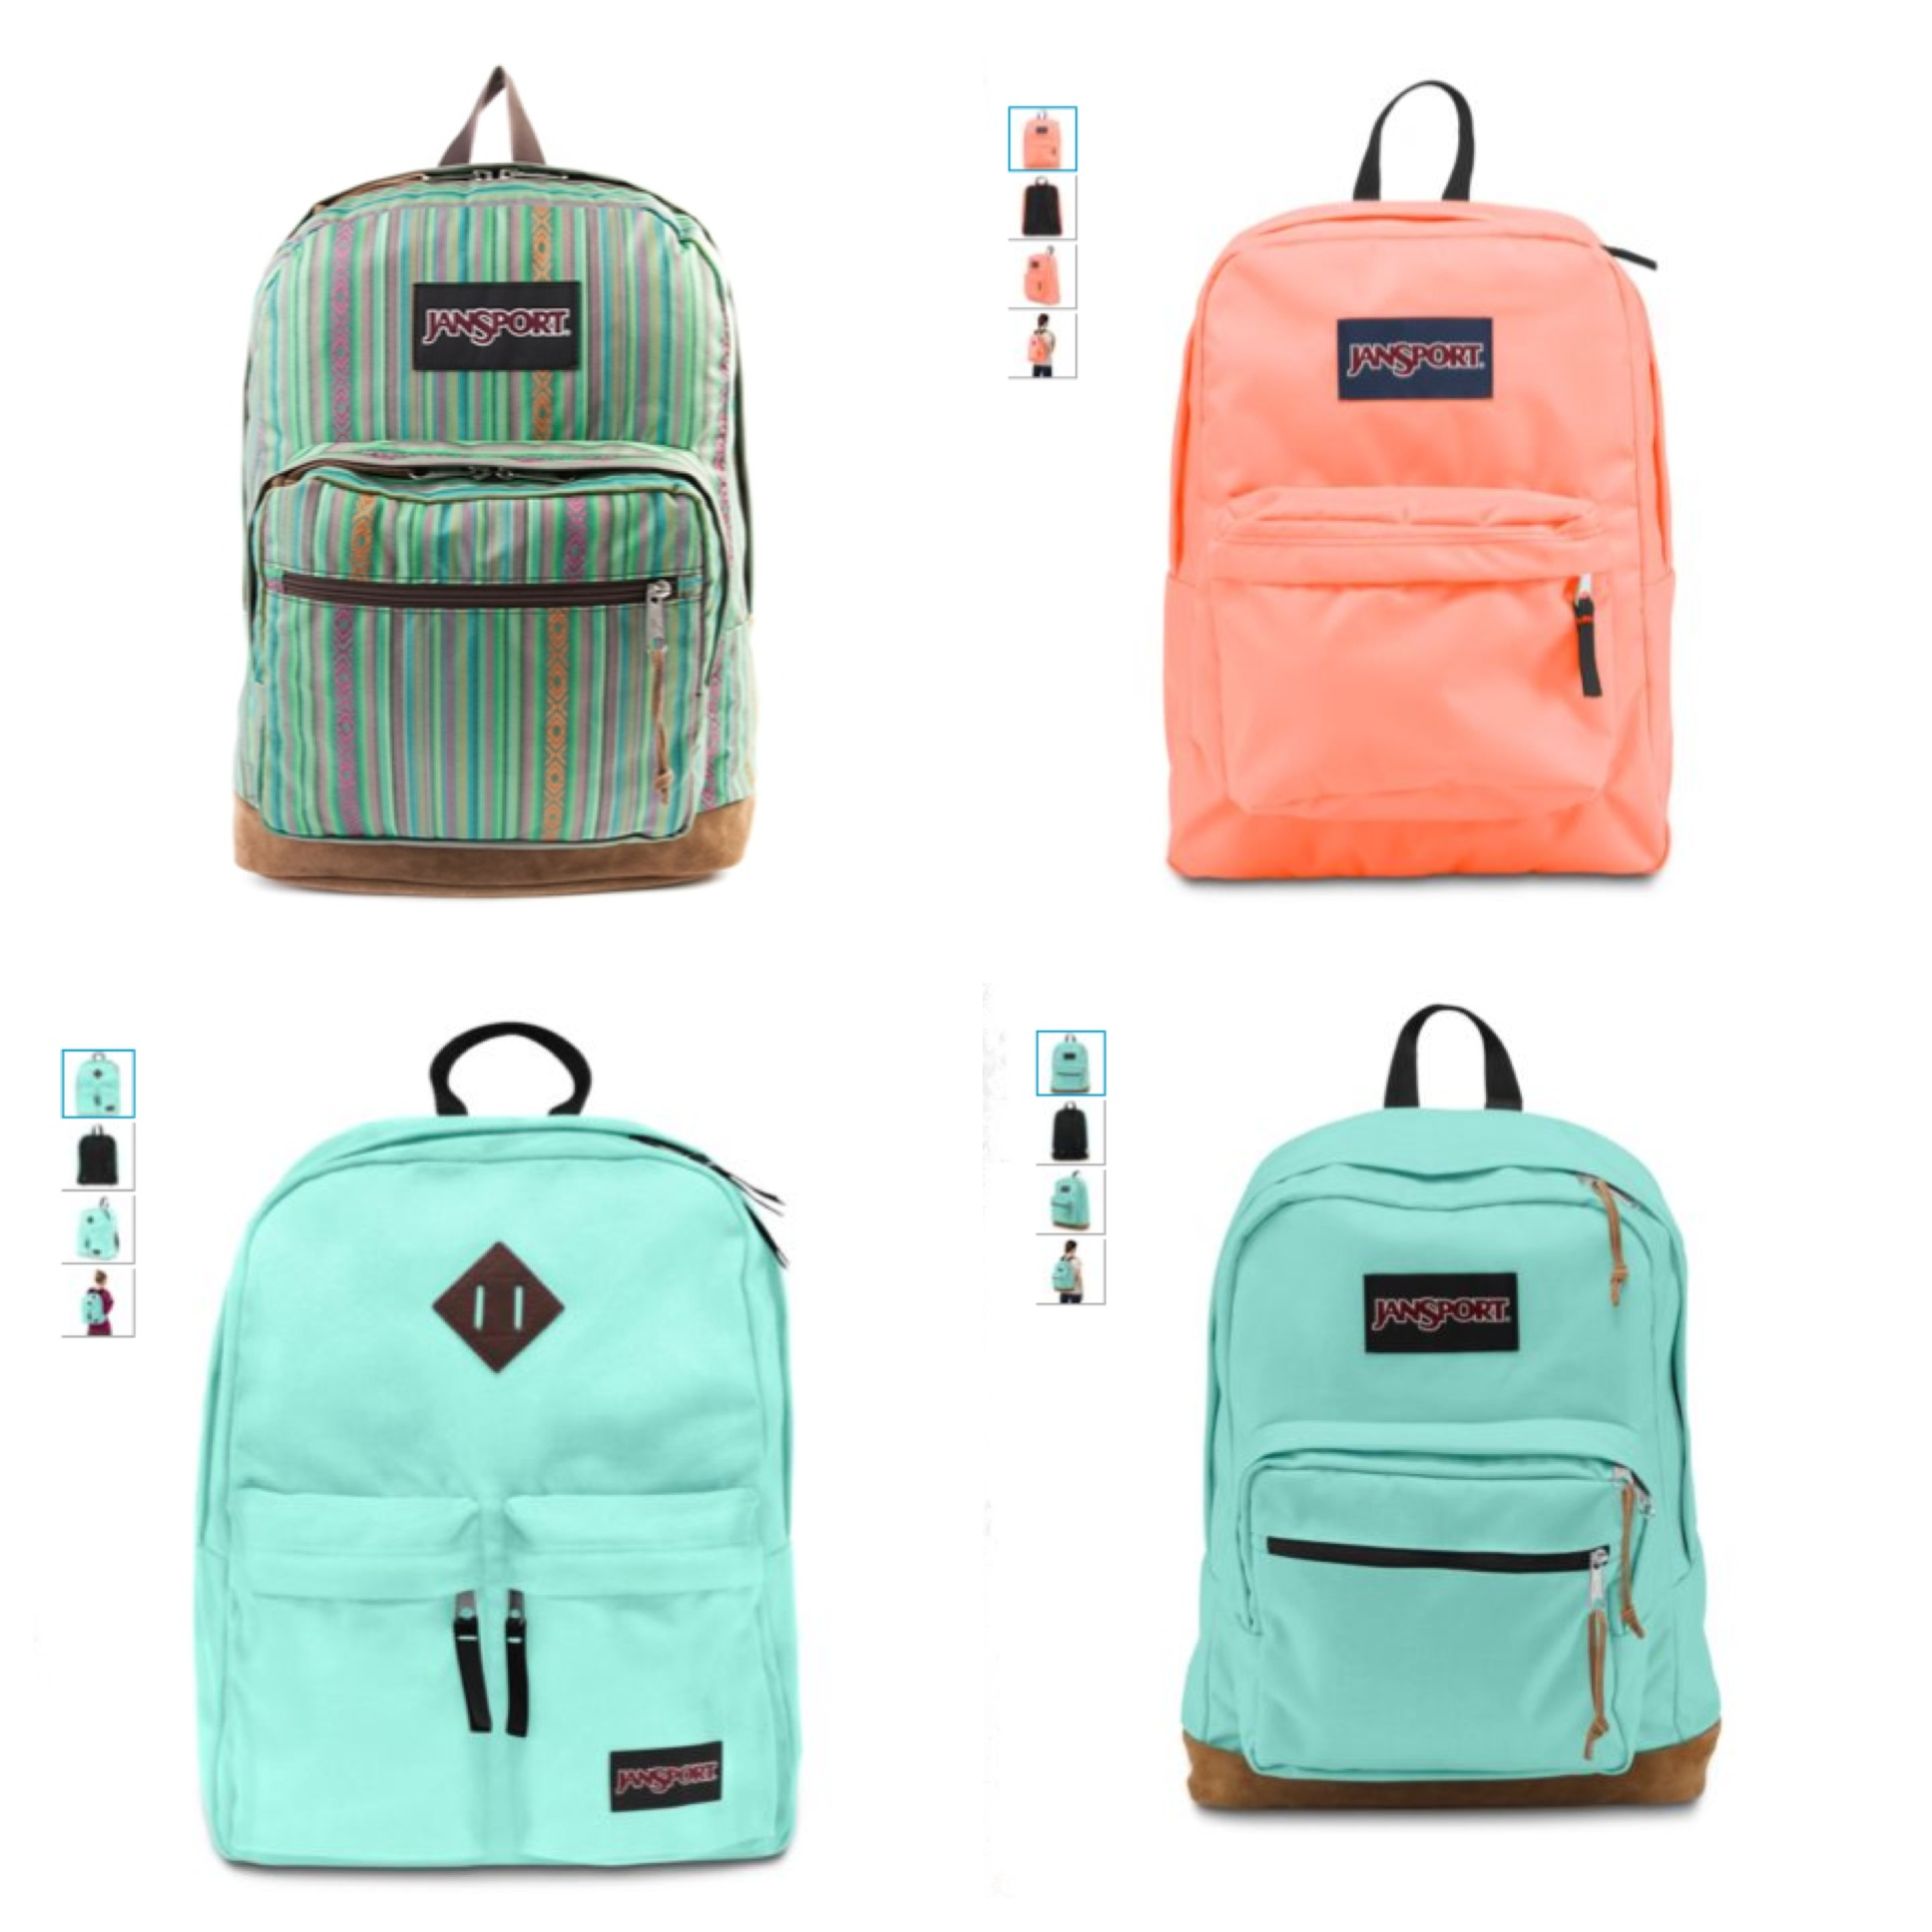 School Backpacks For High Schoolers ODv8aQAW